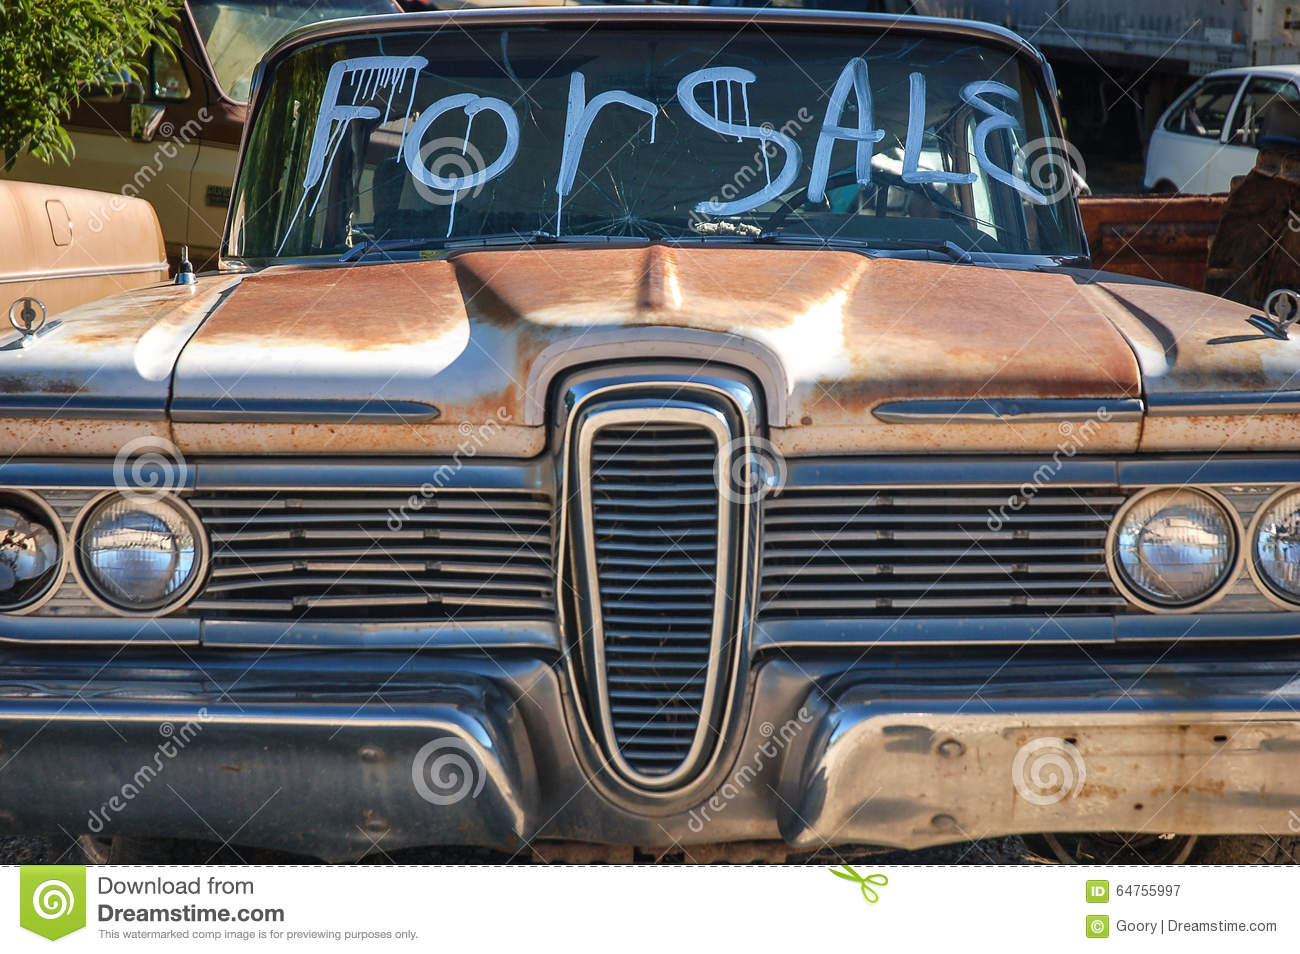 Awesome Junkyard Cars For Sell Pictures Inspiration - Classic Cars ...